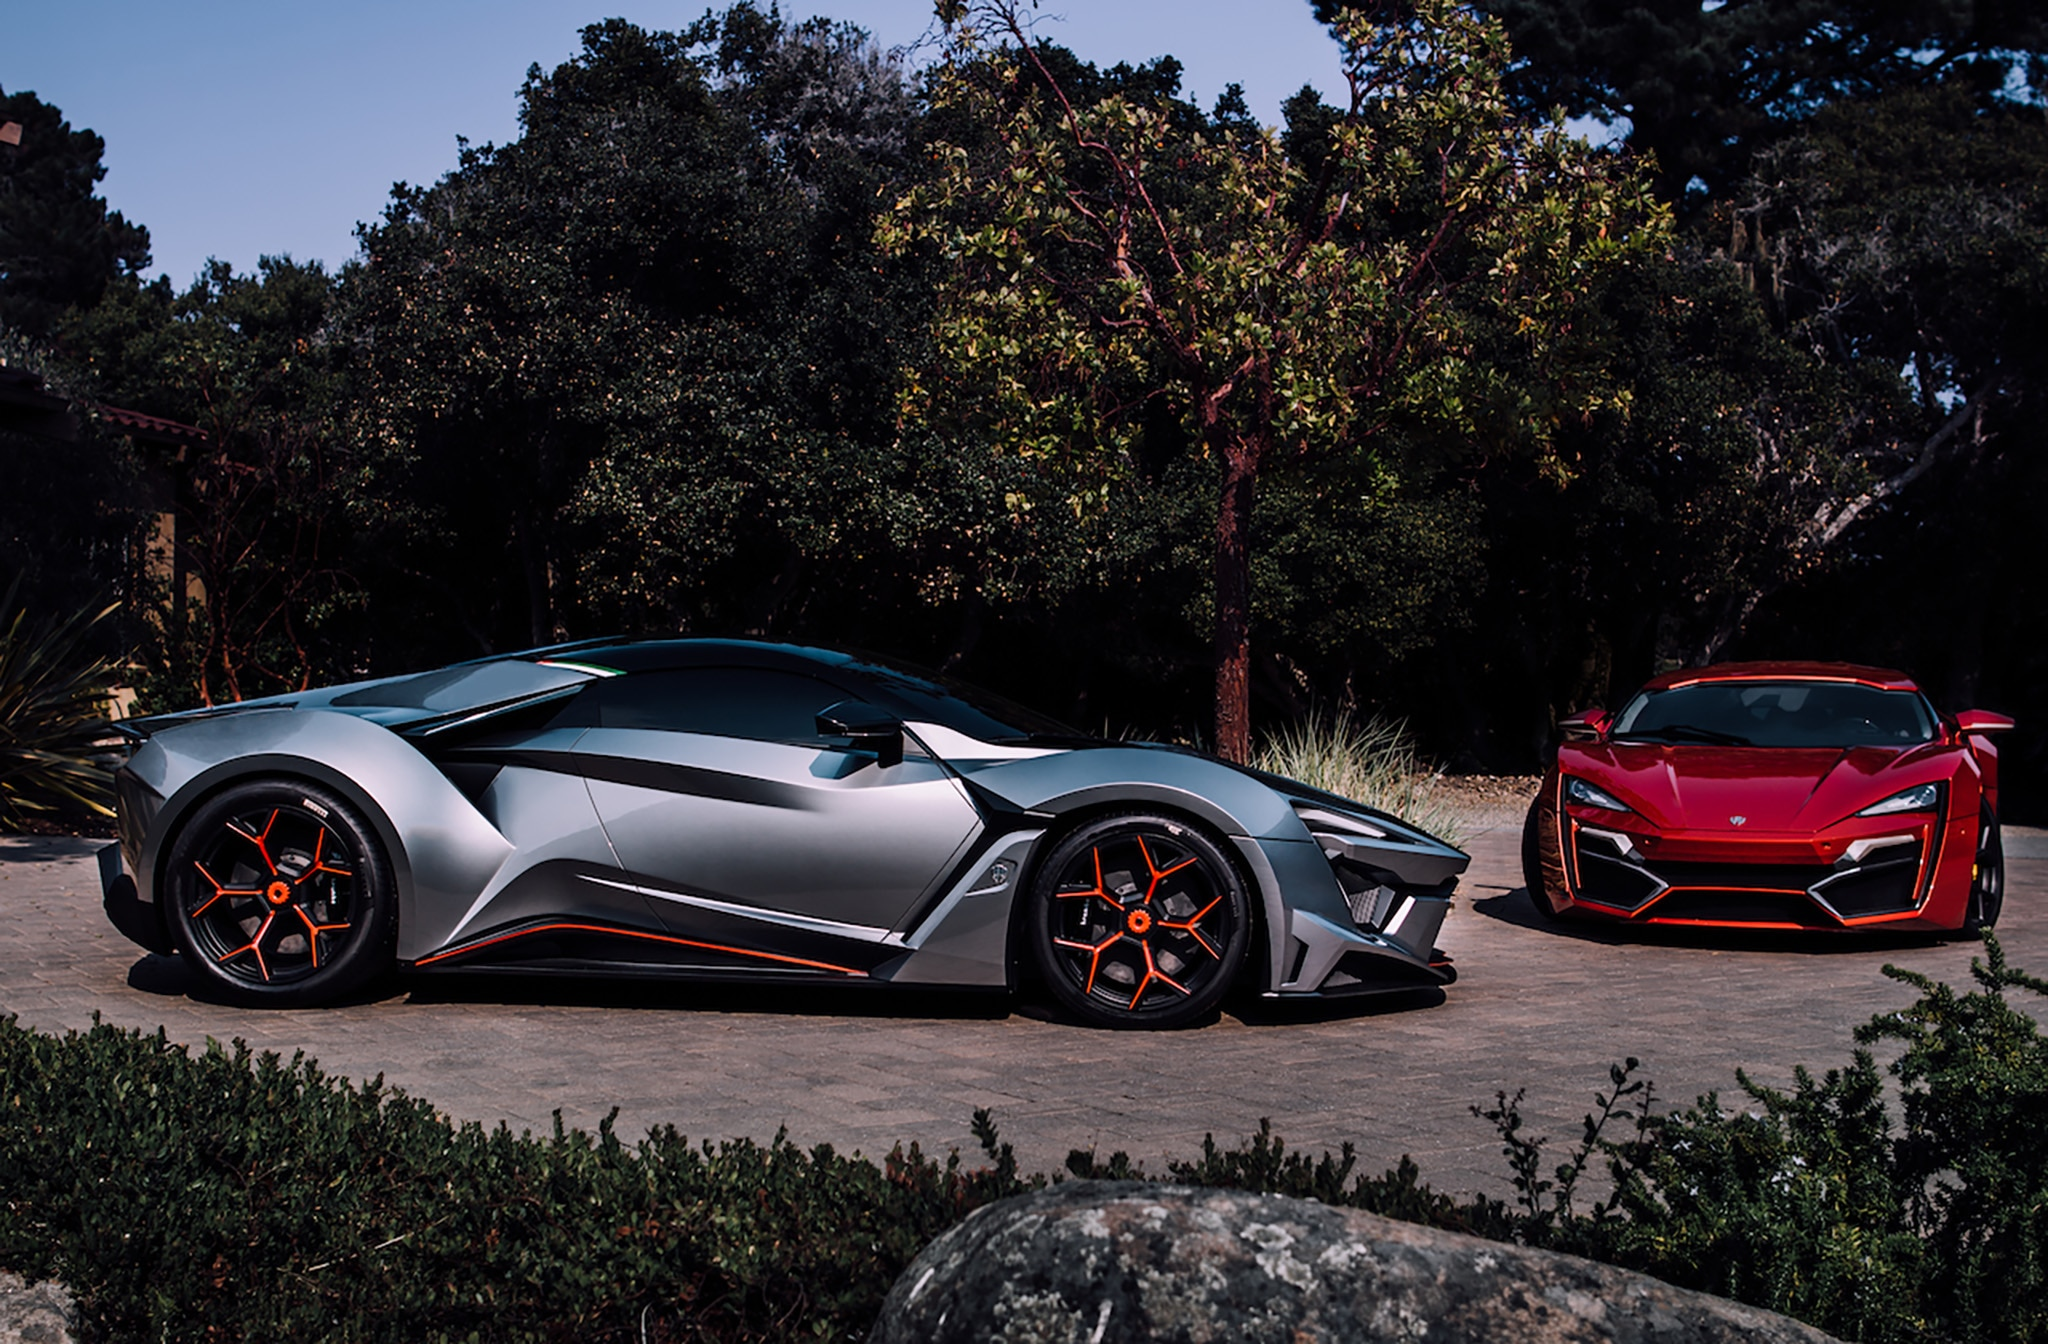 w - W Motors Supersport Limited Edition